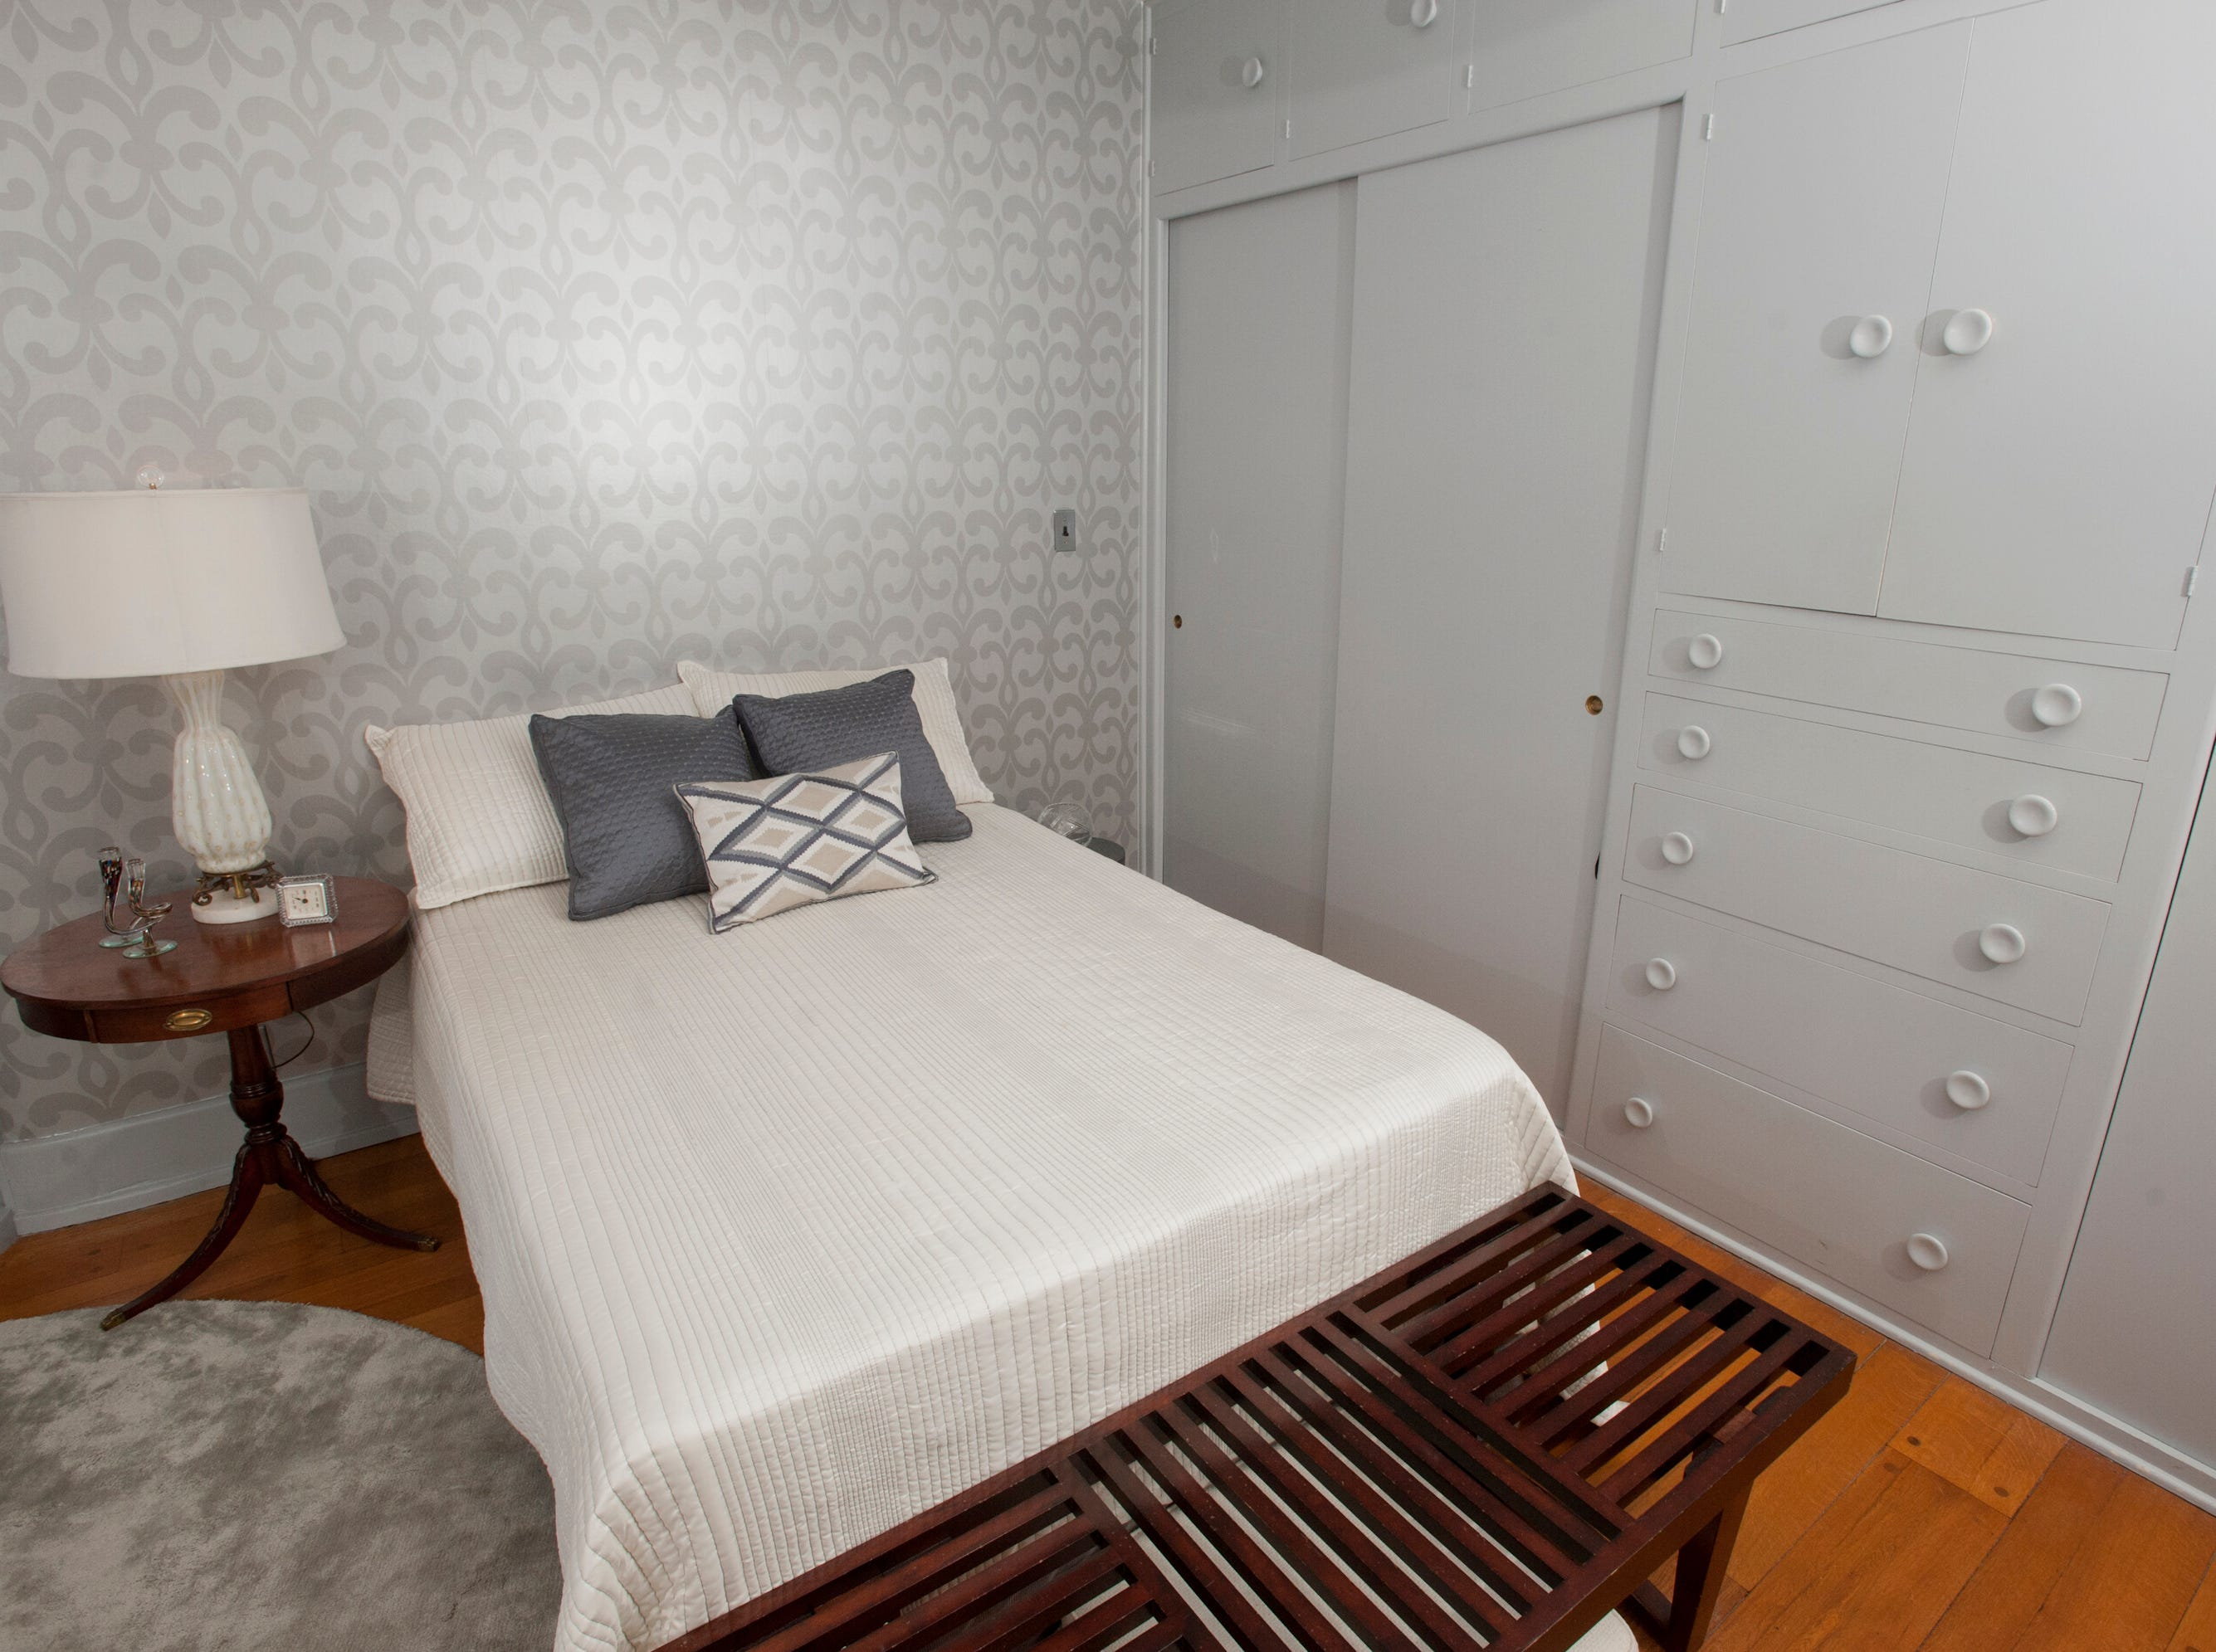 The home's guest bedroom features built-in closets and drawers, at right.10 December 2018